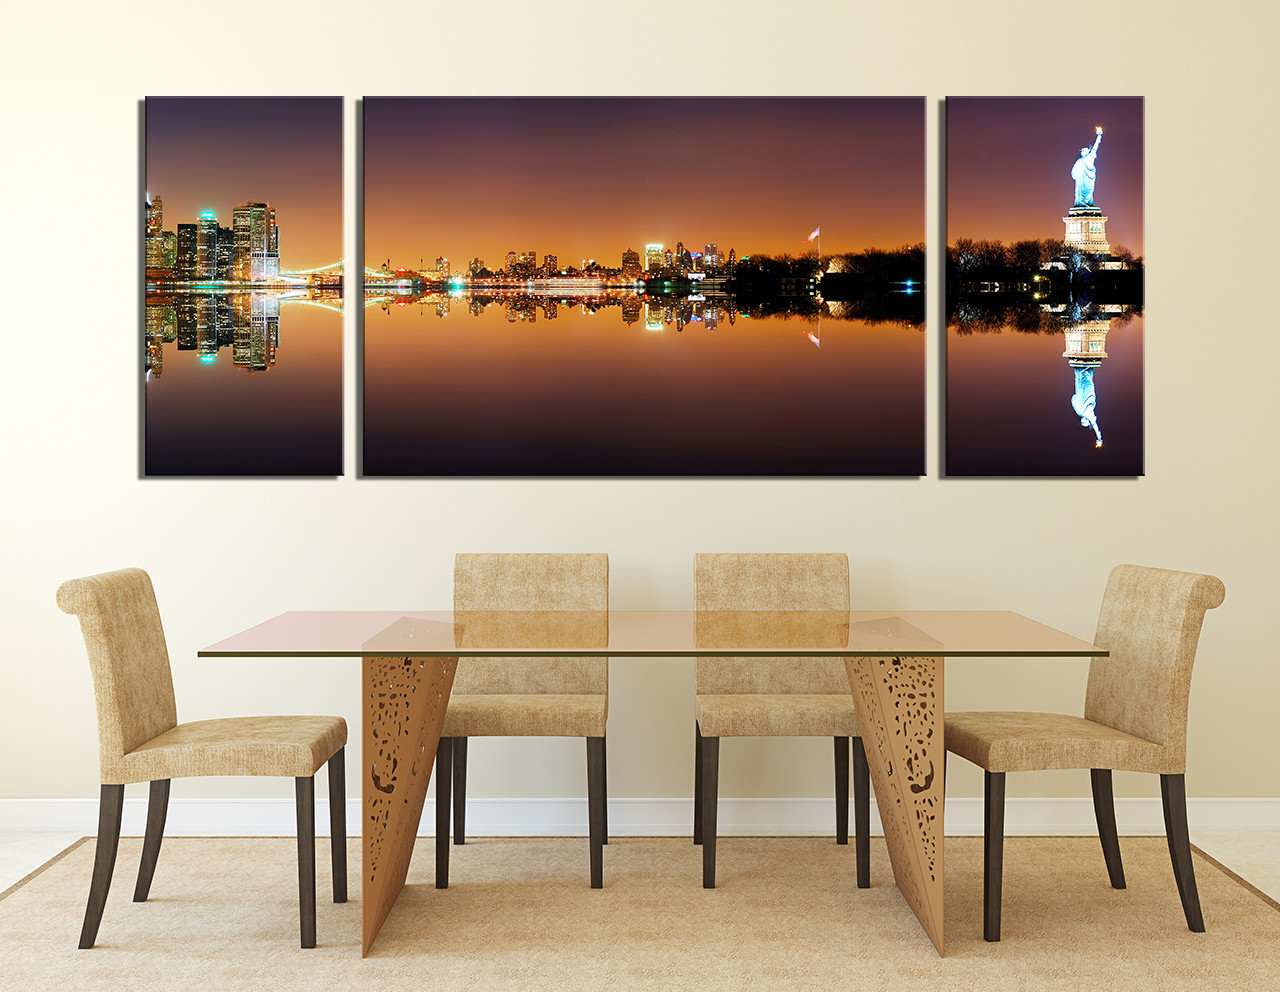 Multi Piece Canvas Wall Art 3 piece canvas photography, new york city wall decor, city huge